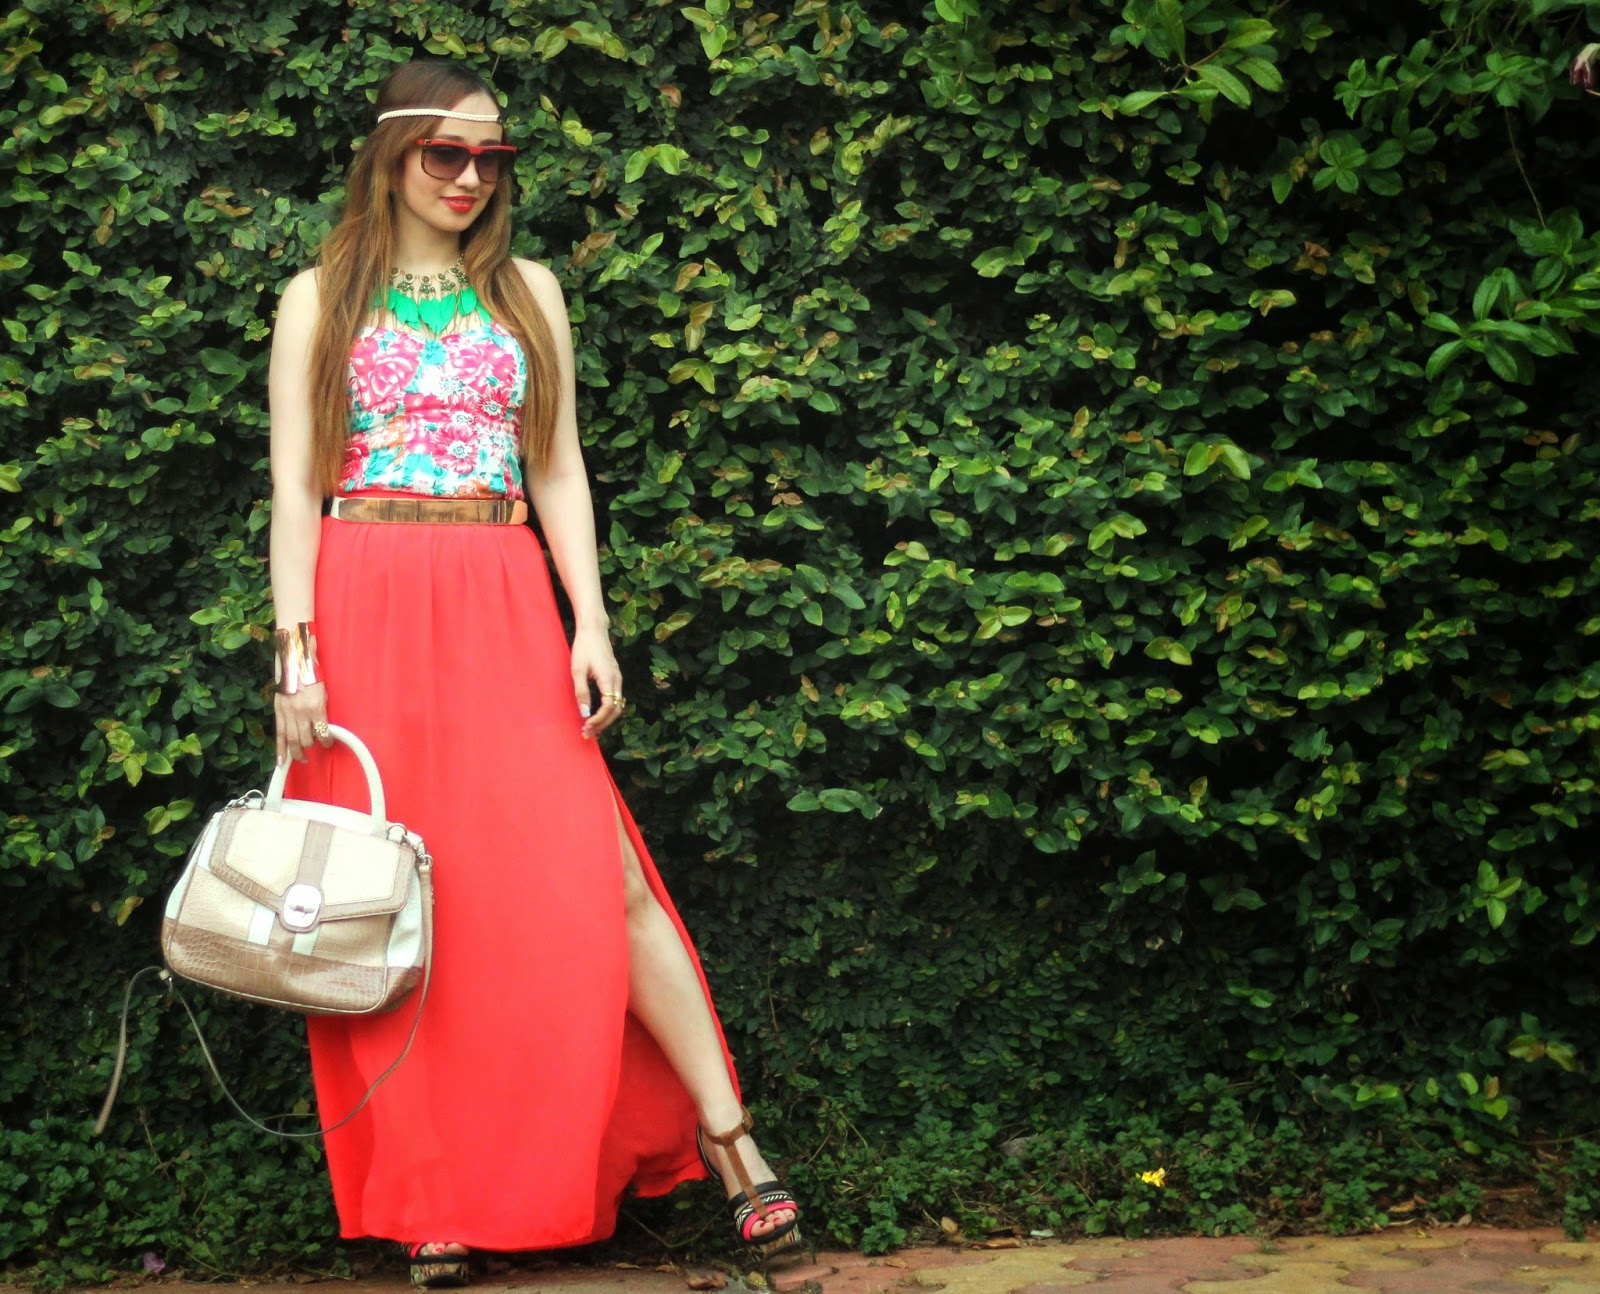 Boho-Chic OOTD - Floral Top & Maxi Skirt